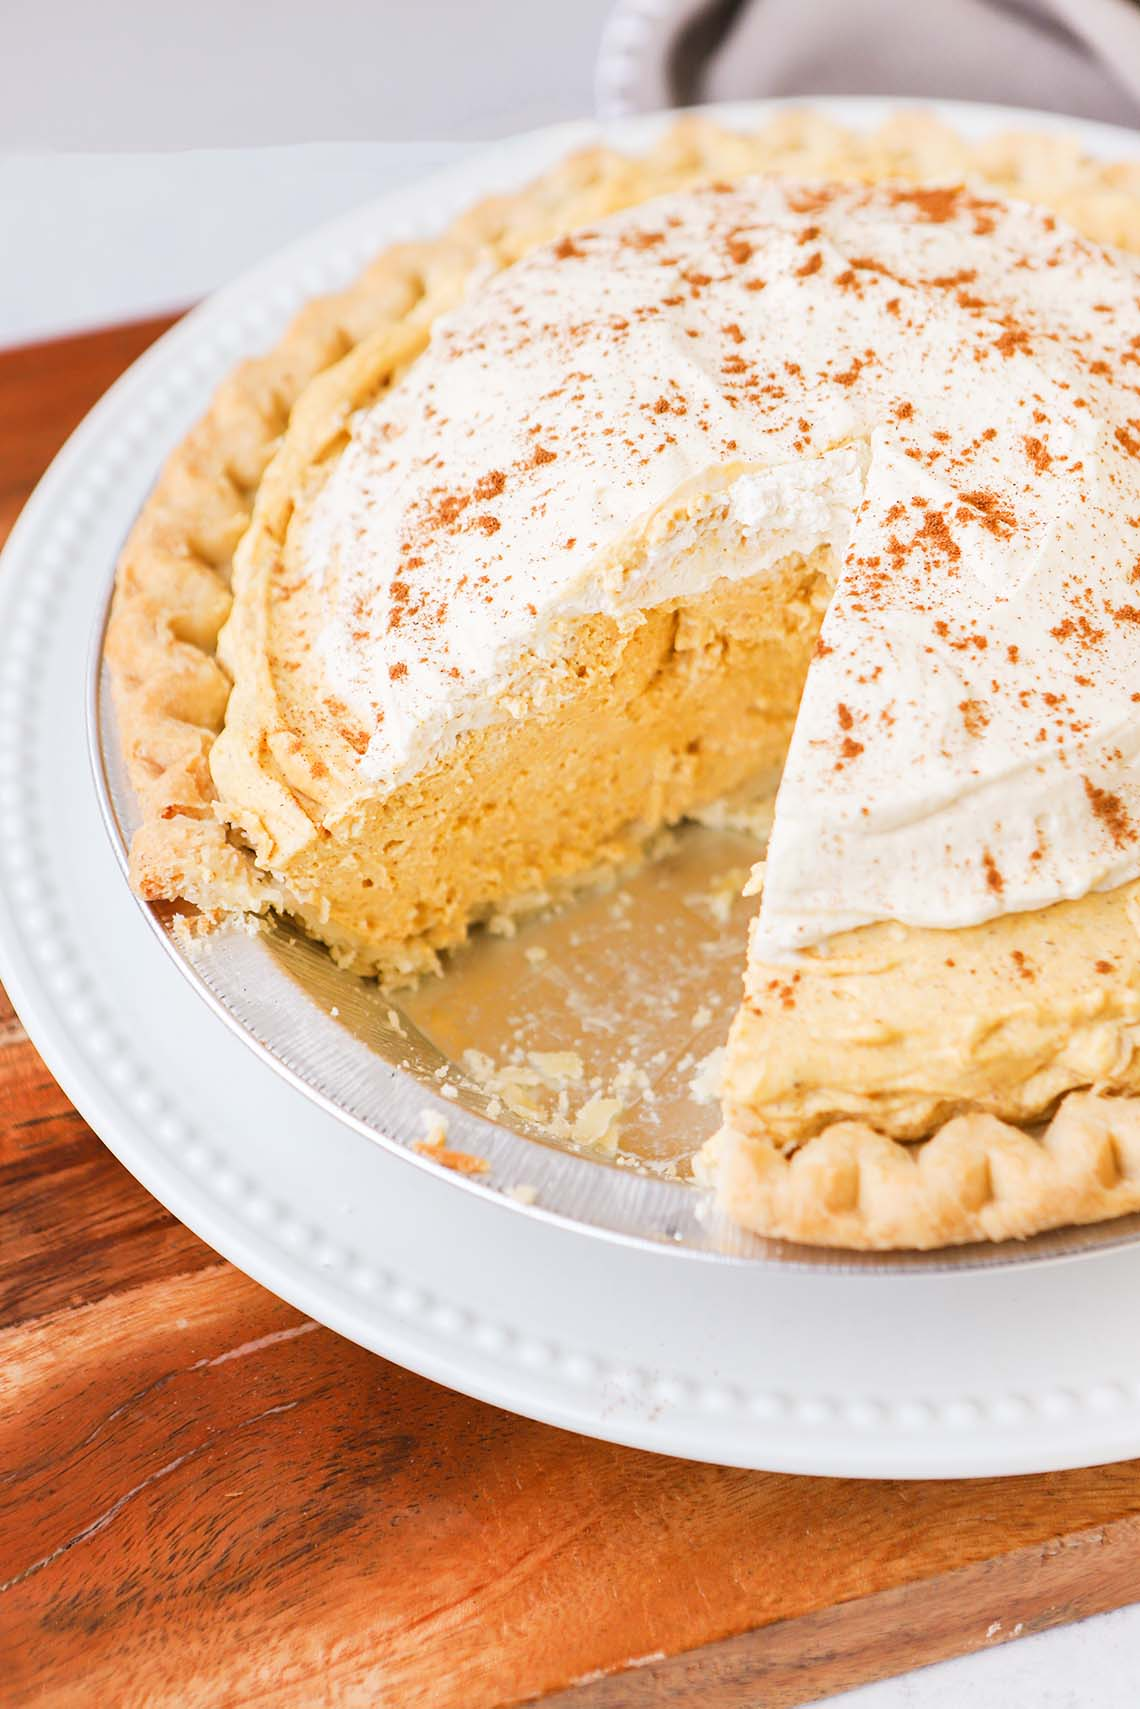 a pie plate full of pumpkin cream pie with a slice taken from it